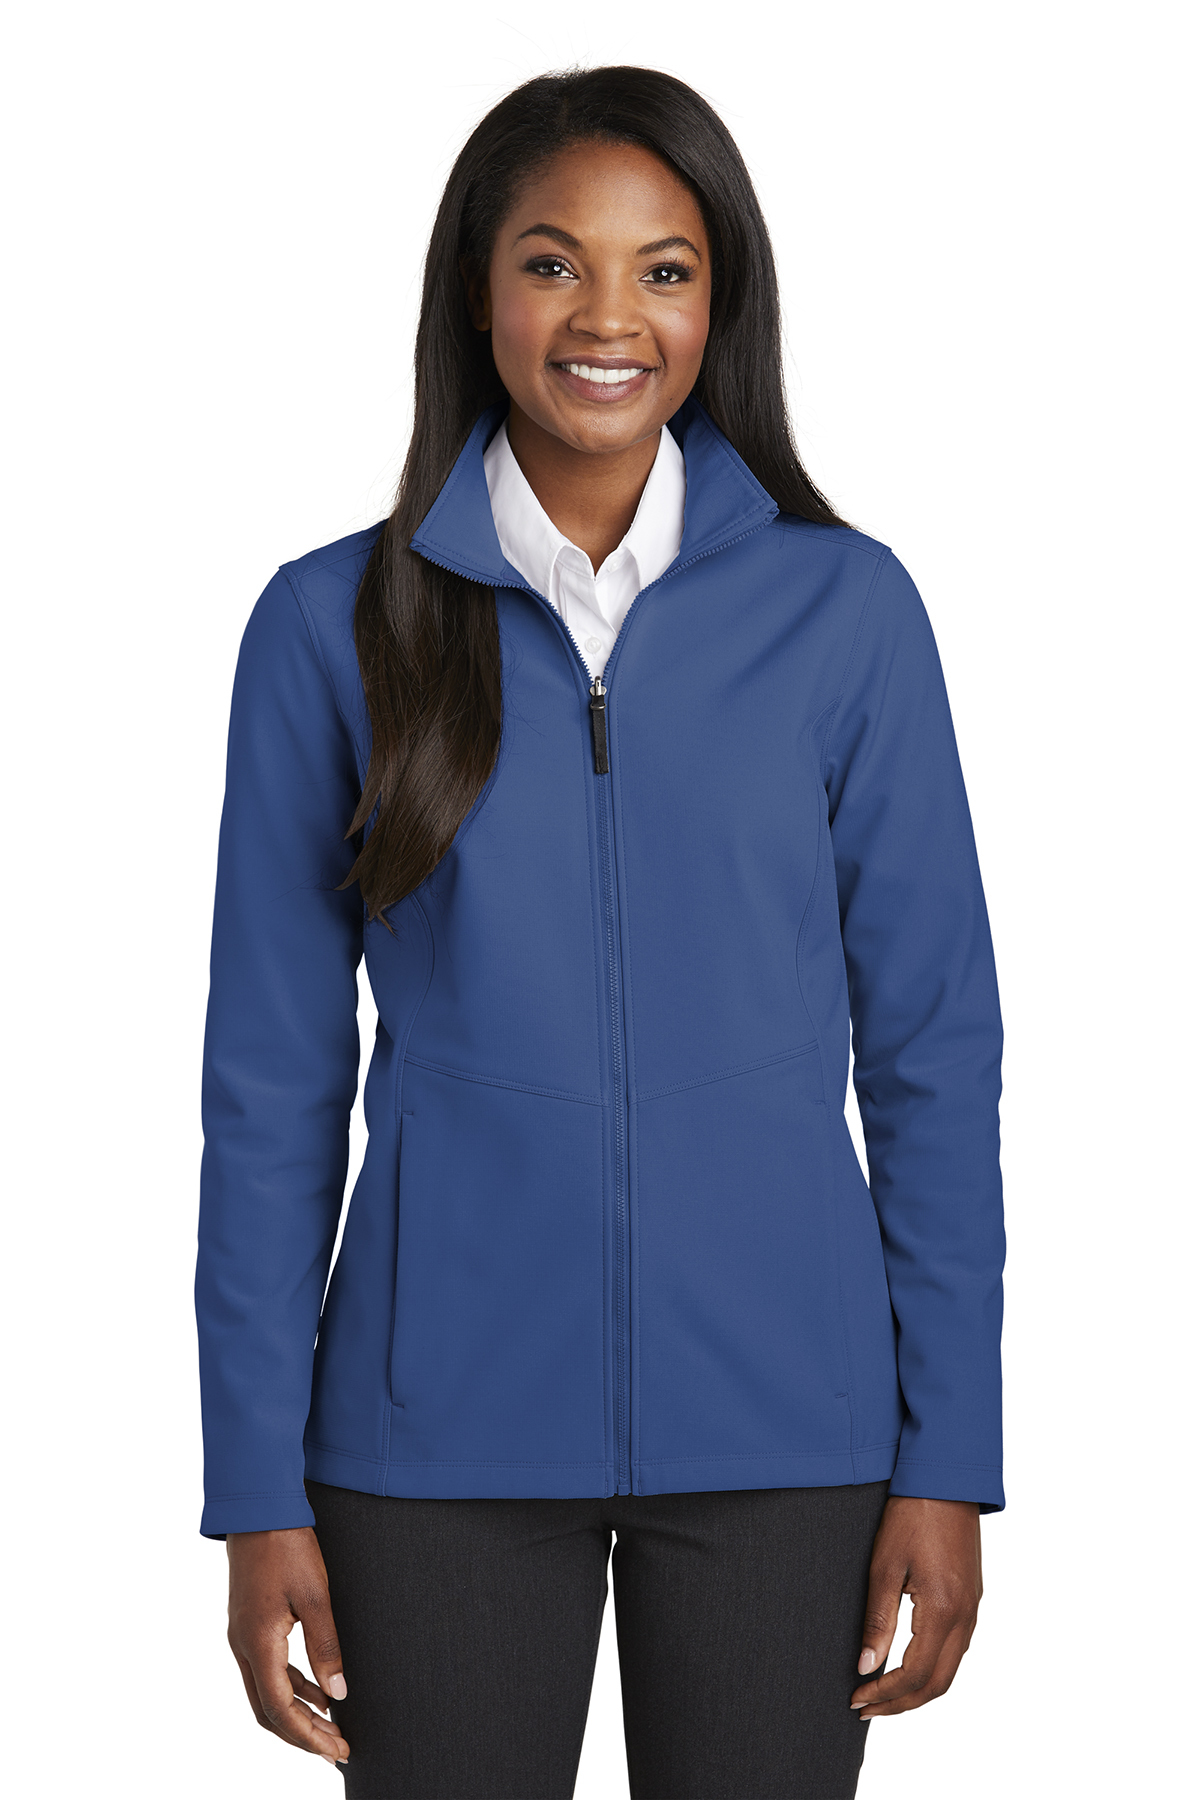 Port Authority L901 - Ladies Collective Soft Shell Jacket